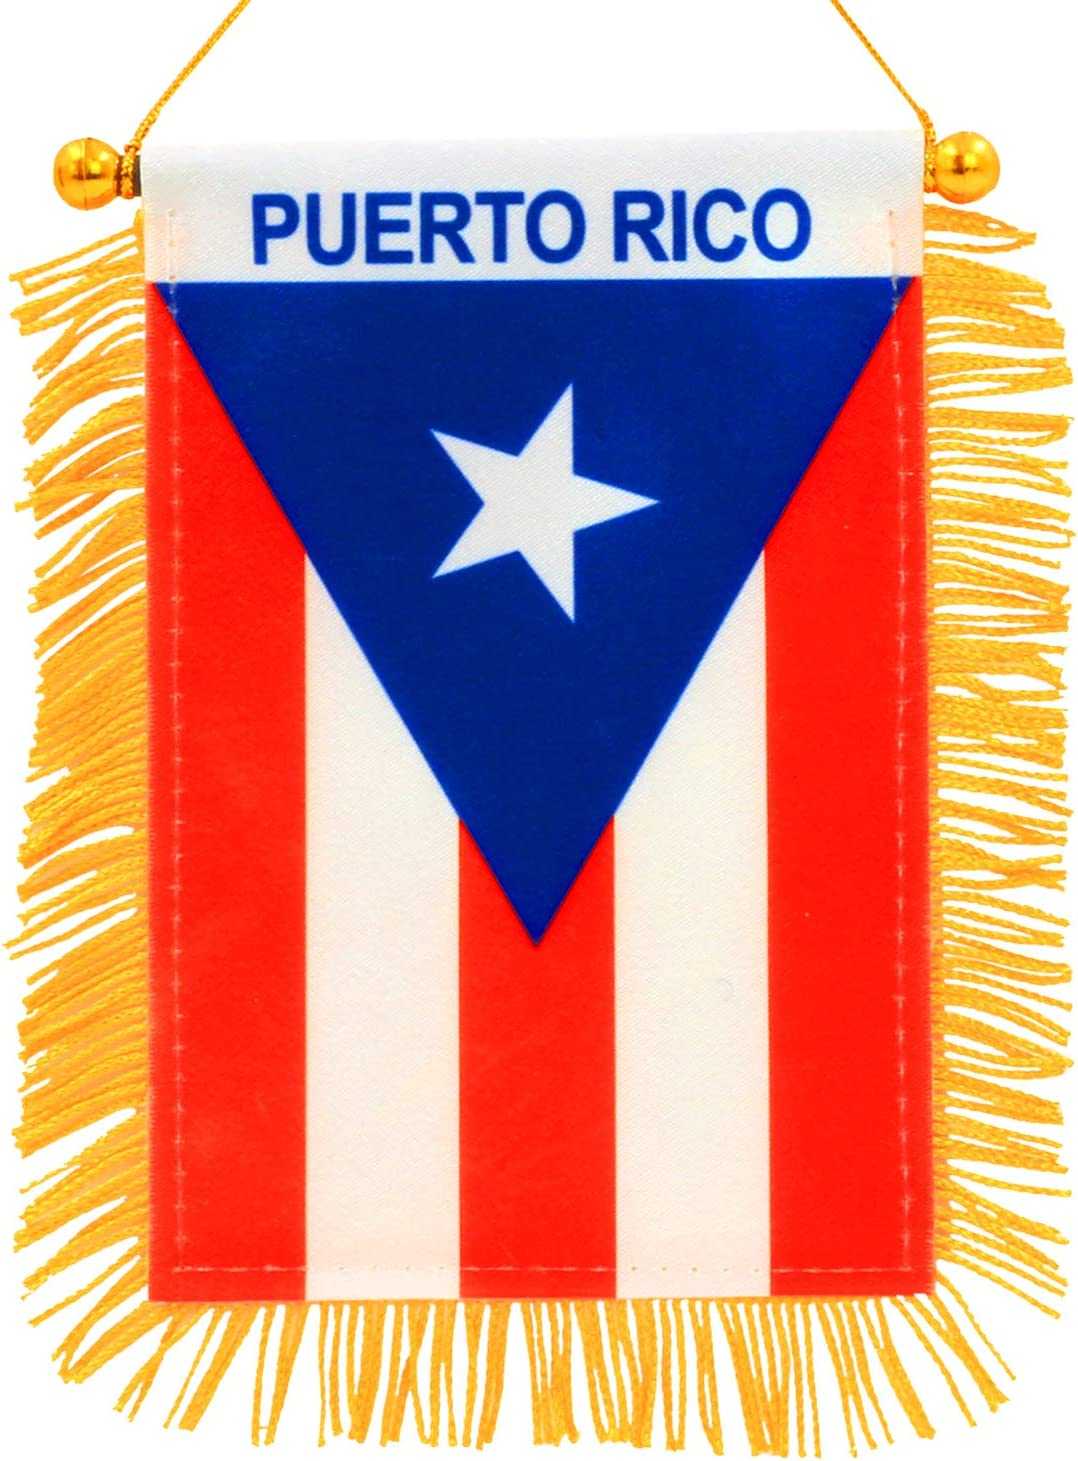 Anley 4 X 6 Inch Puerto Rico Window Hanging Flag - Rearview Mirror & Double Sided - Fringed Puerto Rican Mini Banner with Suction Cup